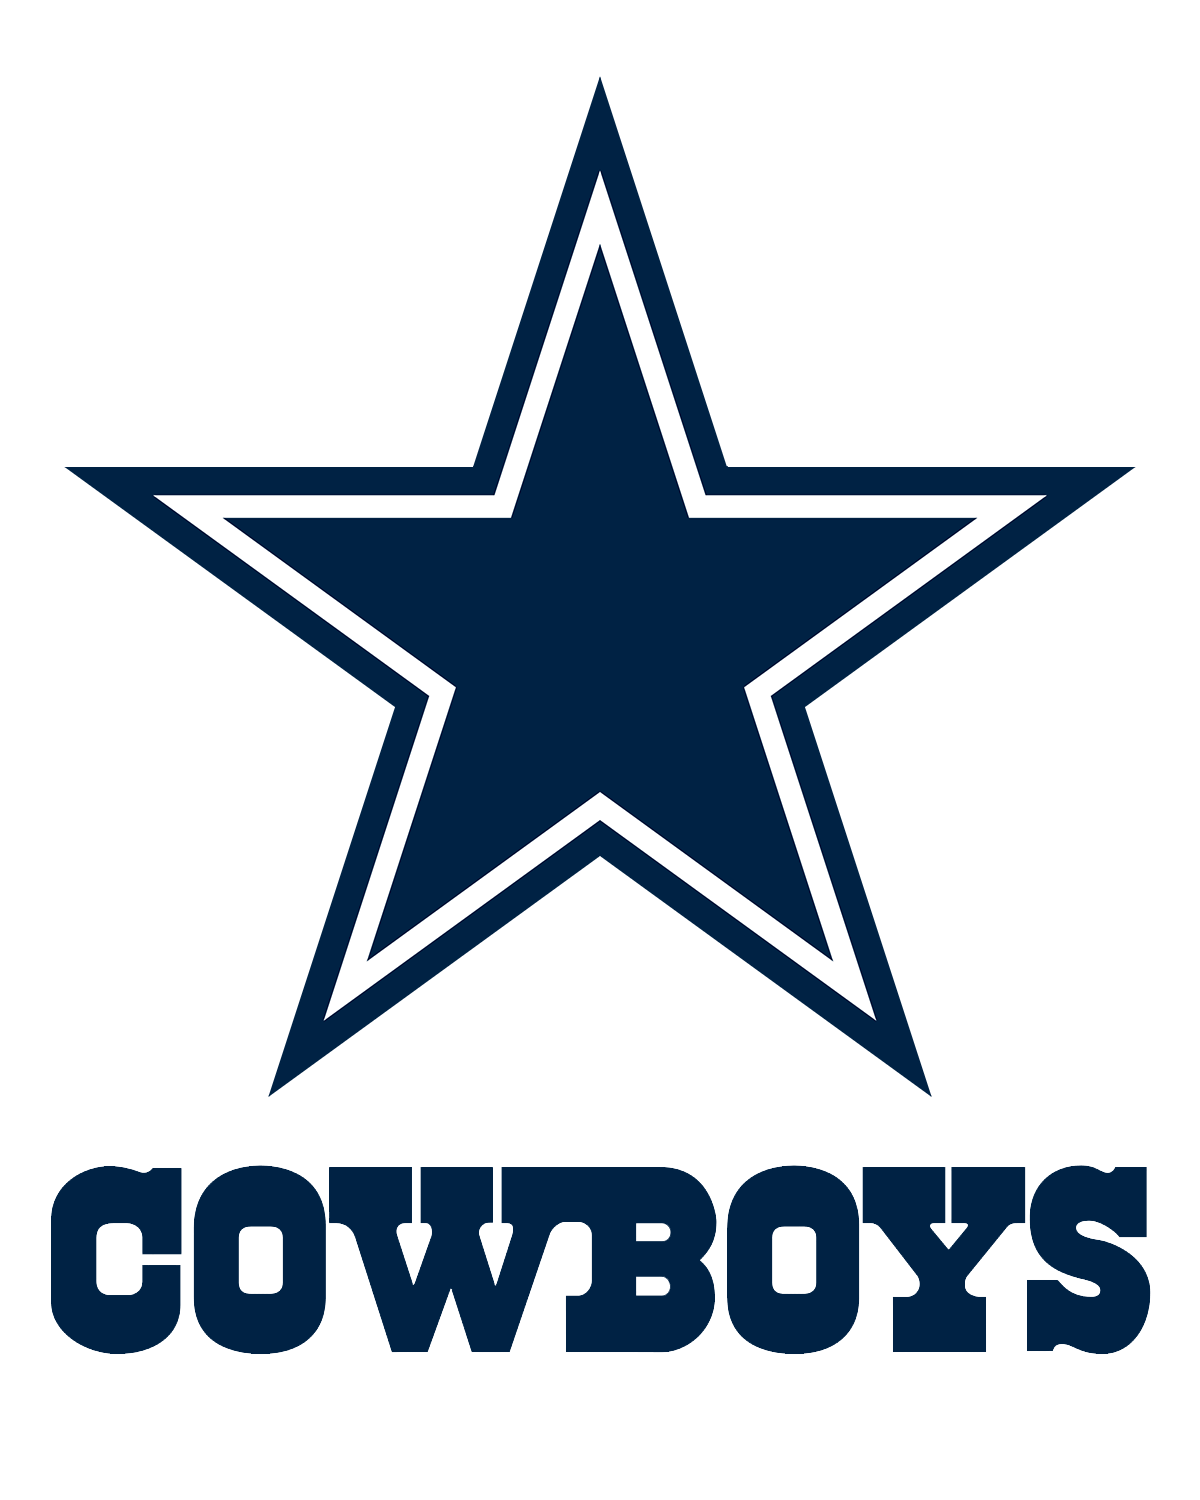 dallas cowboys logo png transparent svg vector freebie supply rh freebiesupply com photos of dallas cowboys logo dallas cowboys logos pics